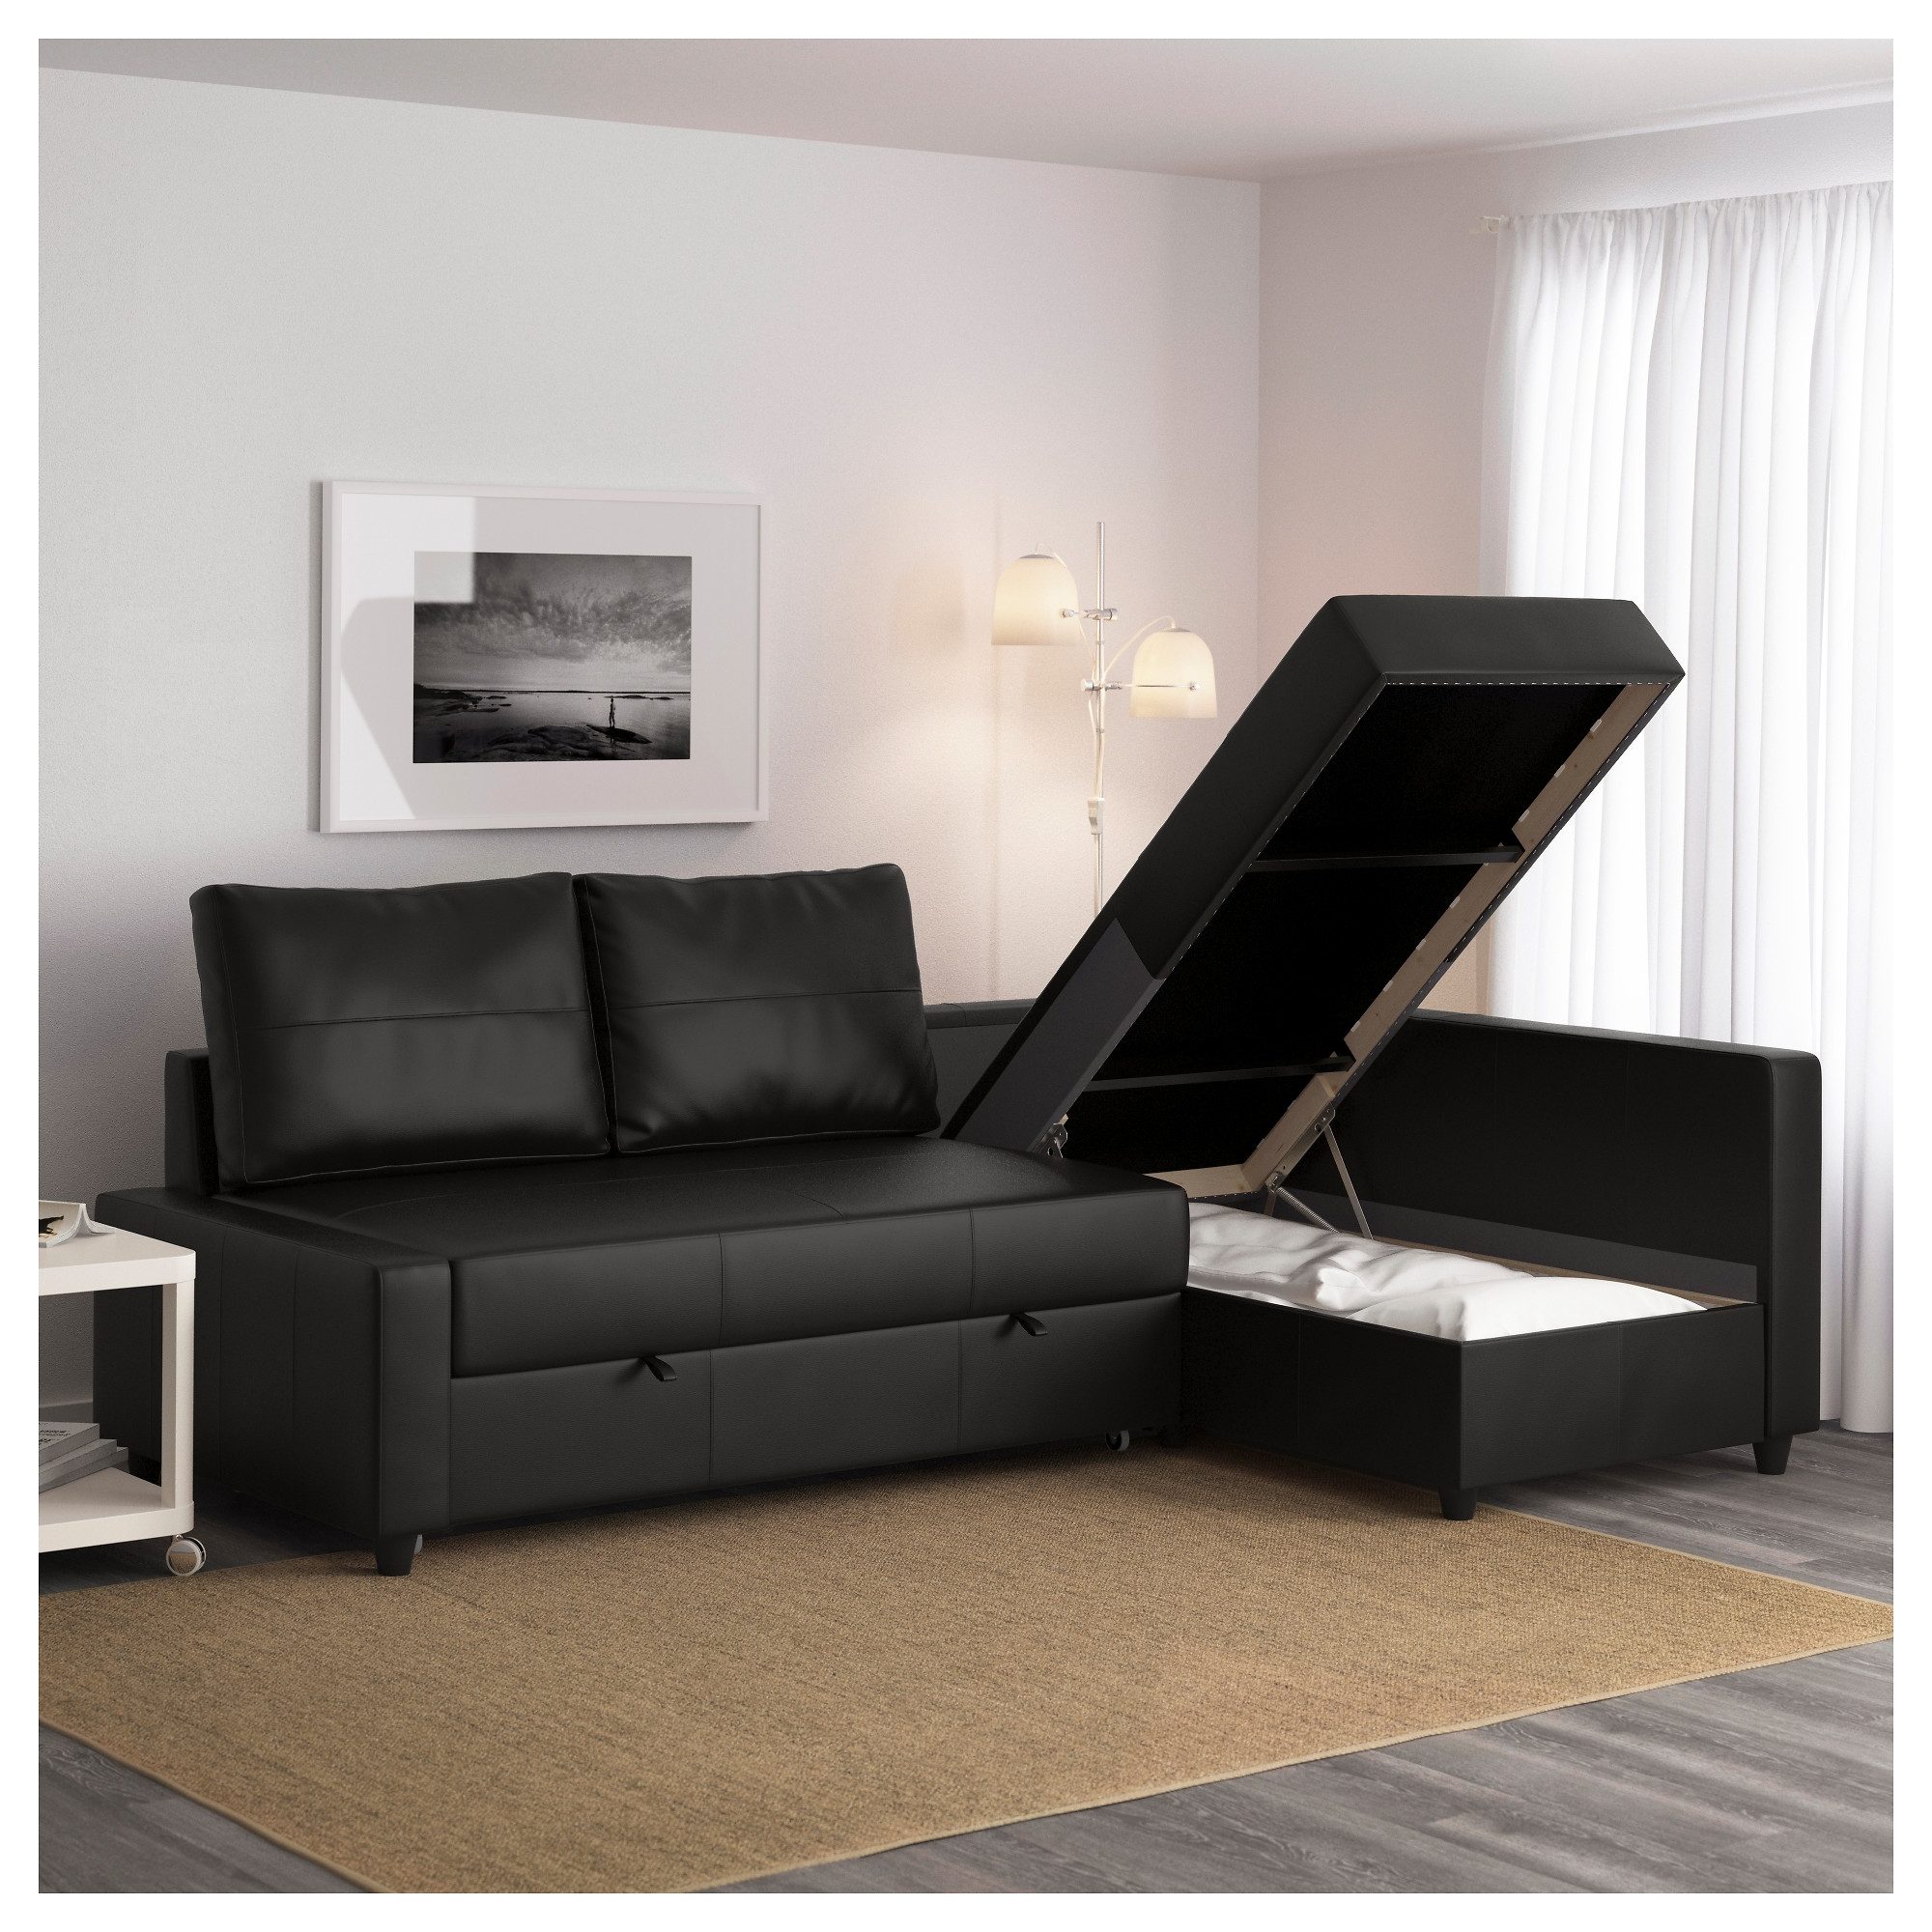 Friheten Sleeper Sectional,3 Seat W/storage – Skiftebo Dark Gray Intended For Well Known Chaise Sofa Beds (View 8 of 15)